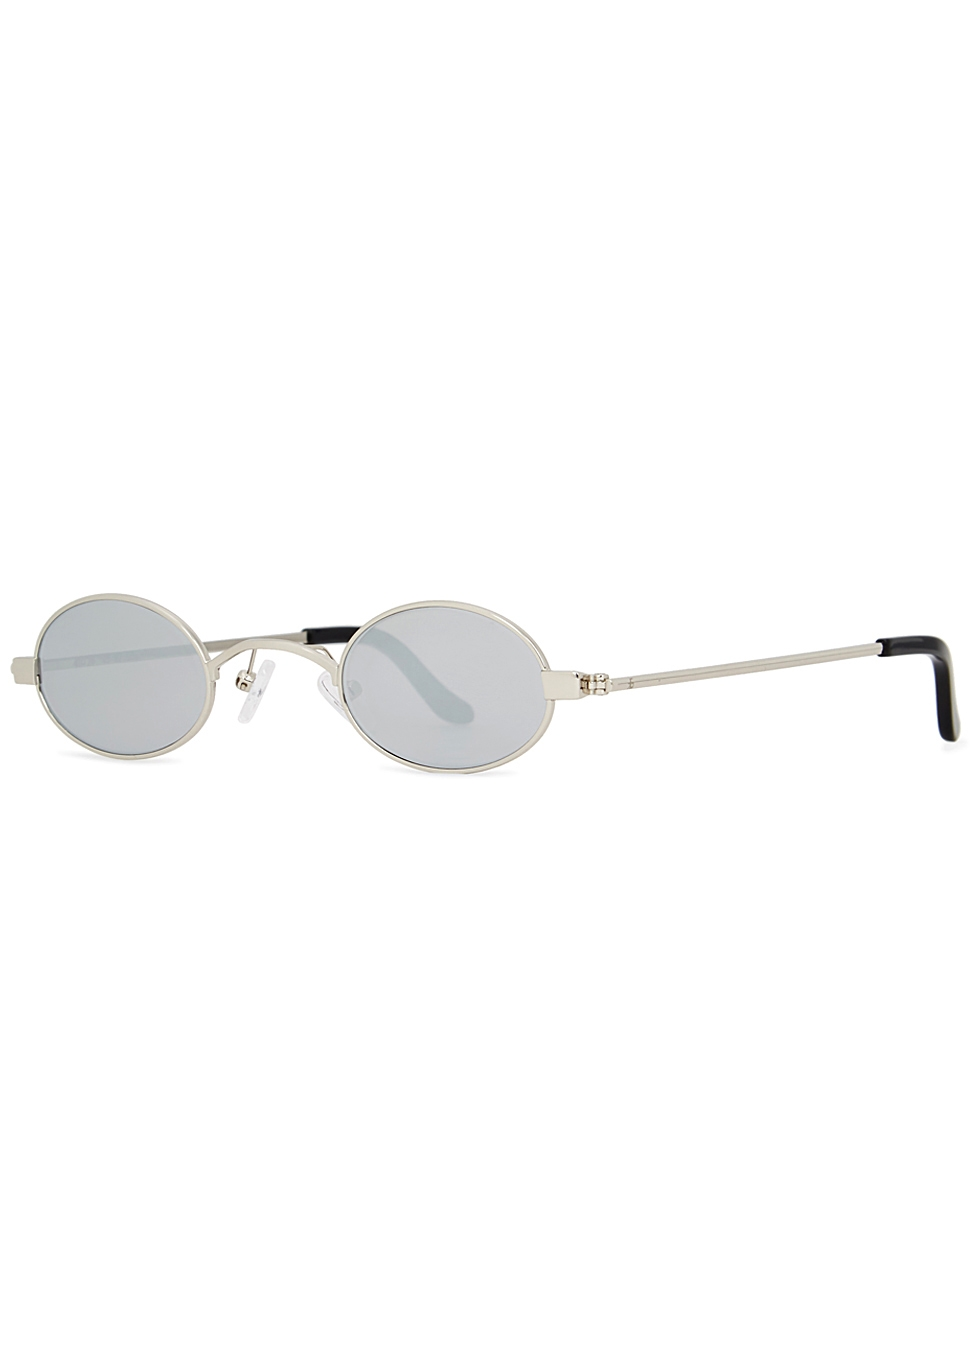 ROBERI AND FRAUD Doris Round-Frame Sunglasses in Silver